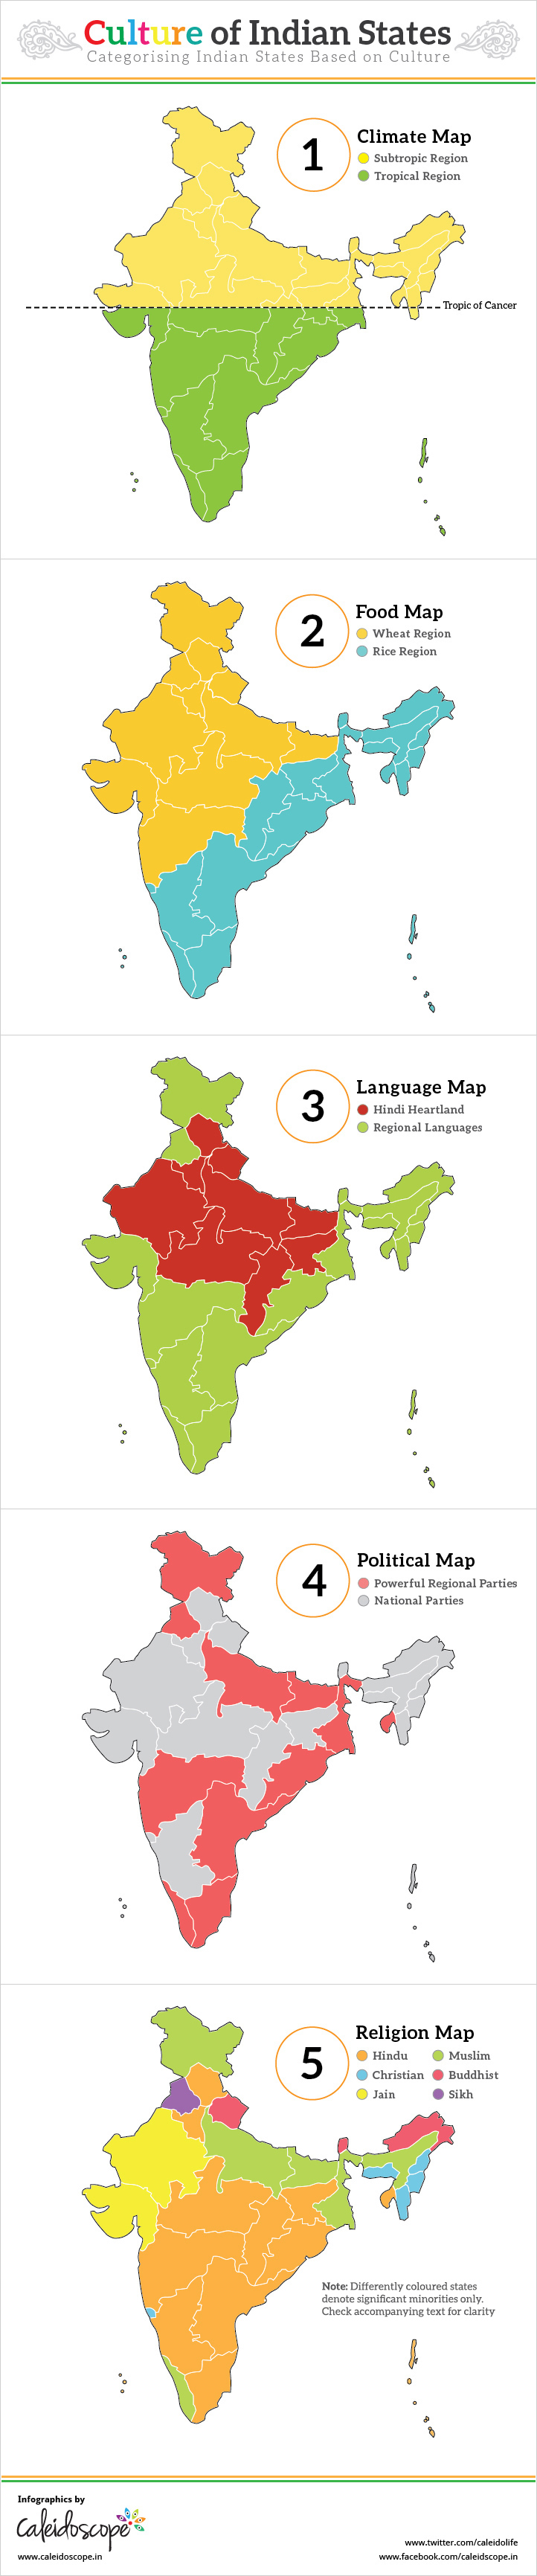 india infographics - Culture of Indian States